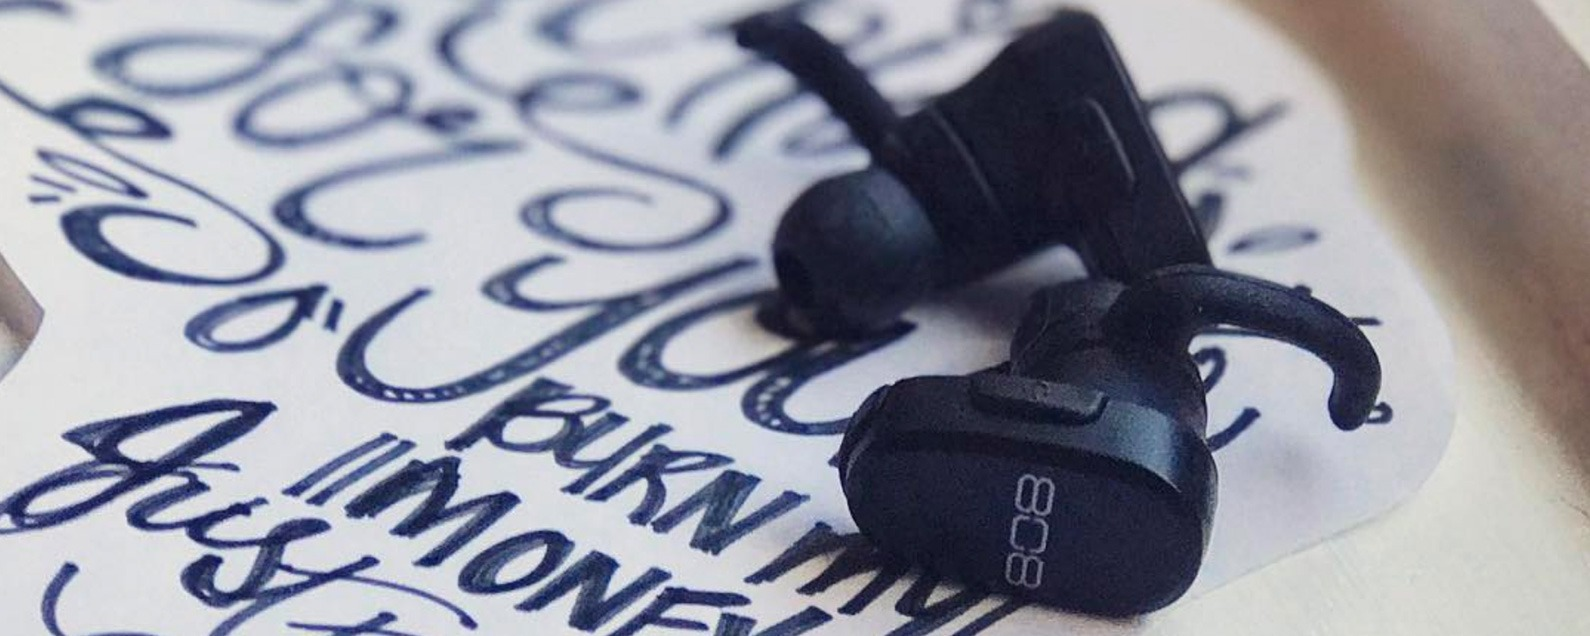 af51c7979aa Review: 808 Audio's Earcanz Tru Wireless Bluetooth Earbuds ...